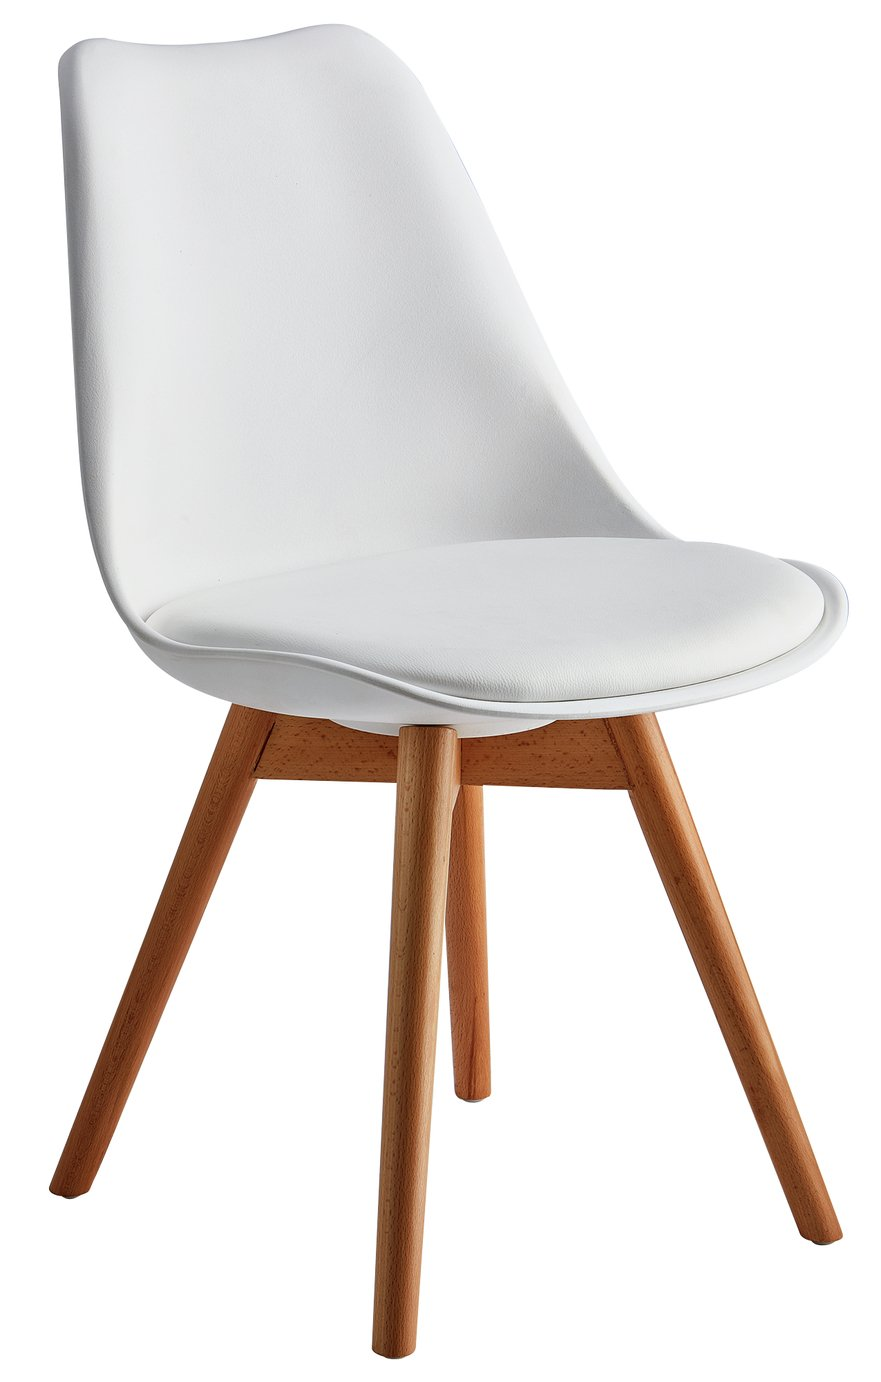 Exceptional Hygena New Charlie Dining Chair   White